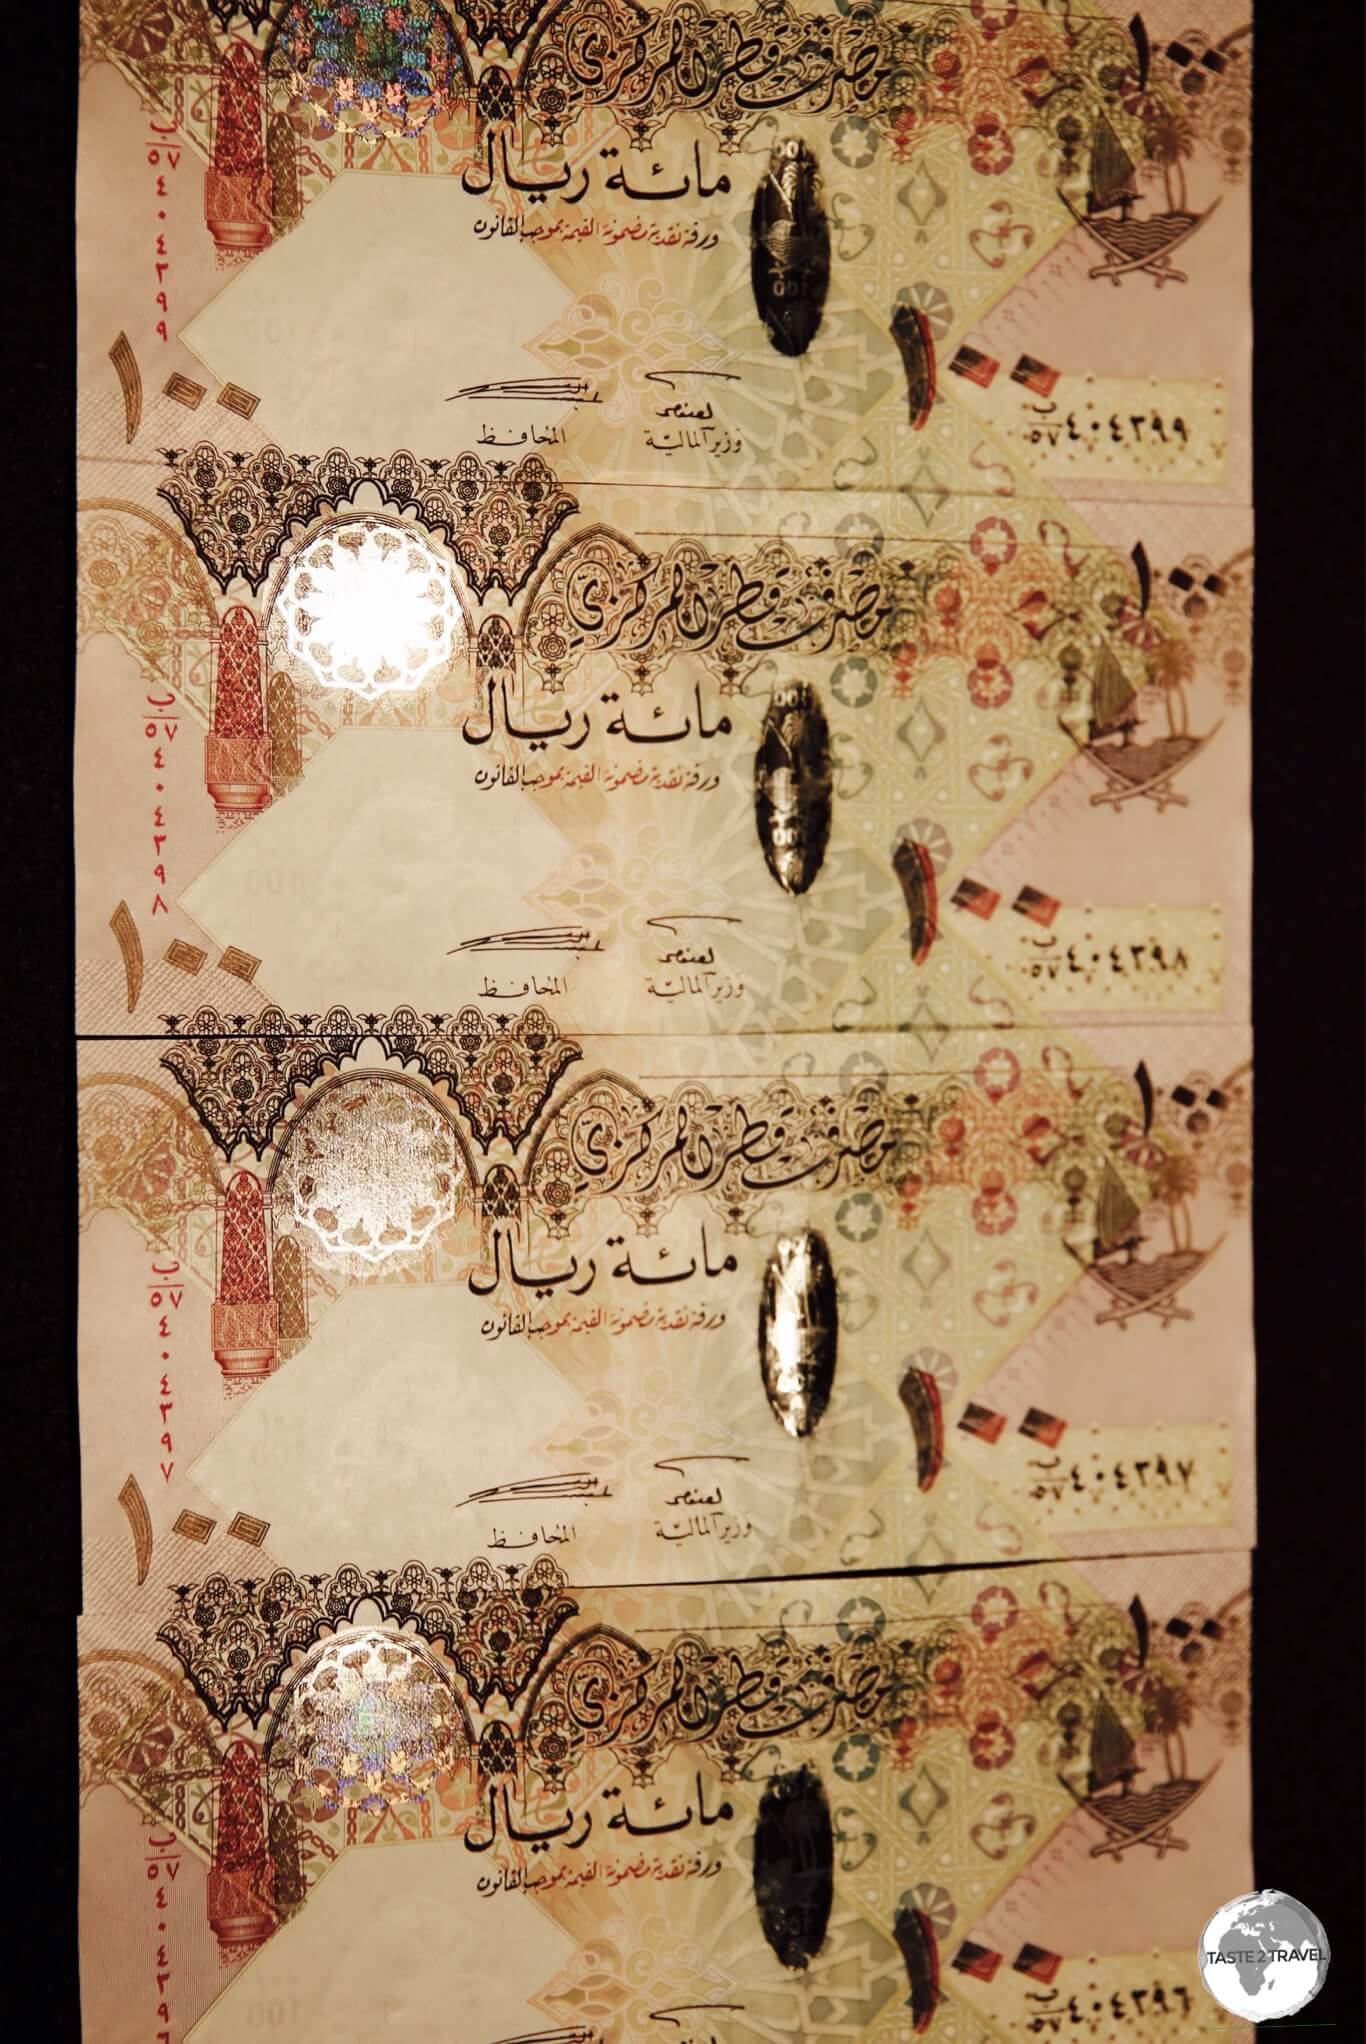 Qatari 100 Riyal notes.